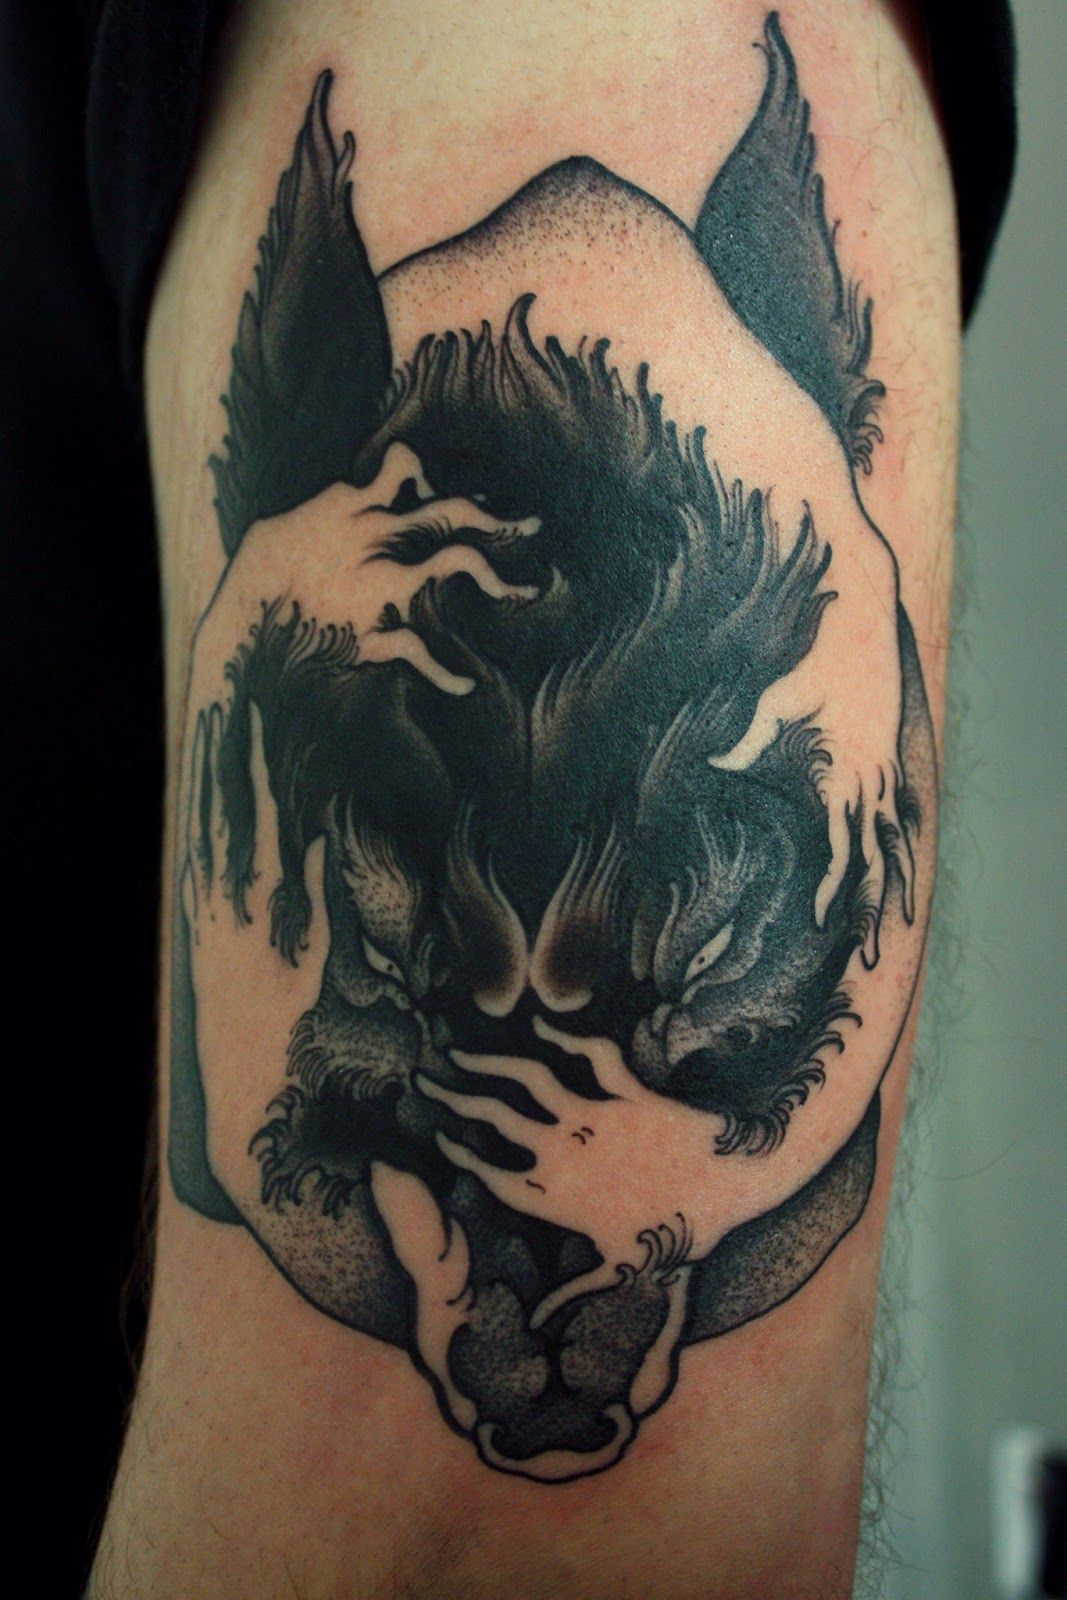 steppenwolf tattoos - Google Search | mark that bark ...